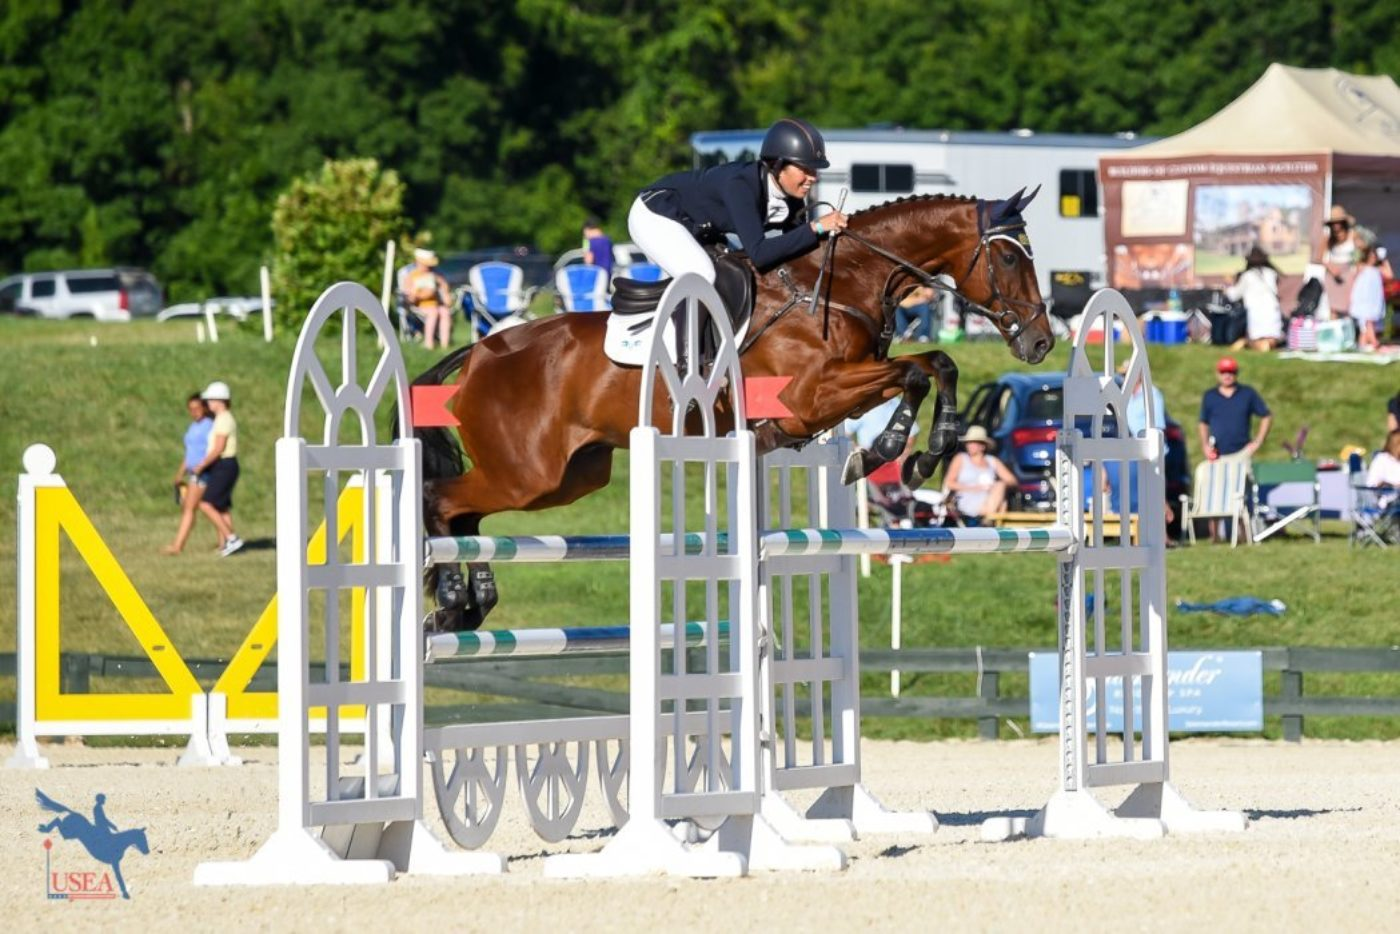 25th - Meghan O'Donoghue and Palm Crescent - 39.6